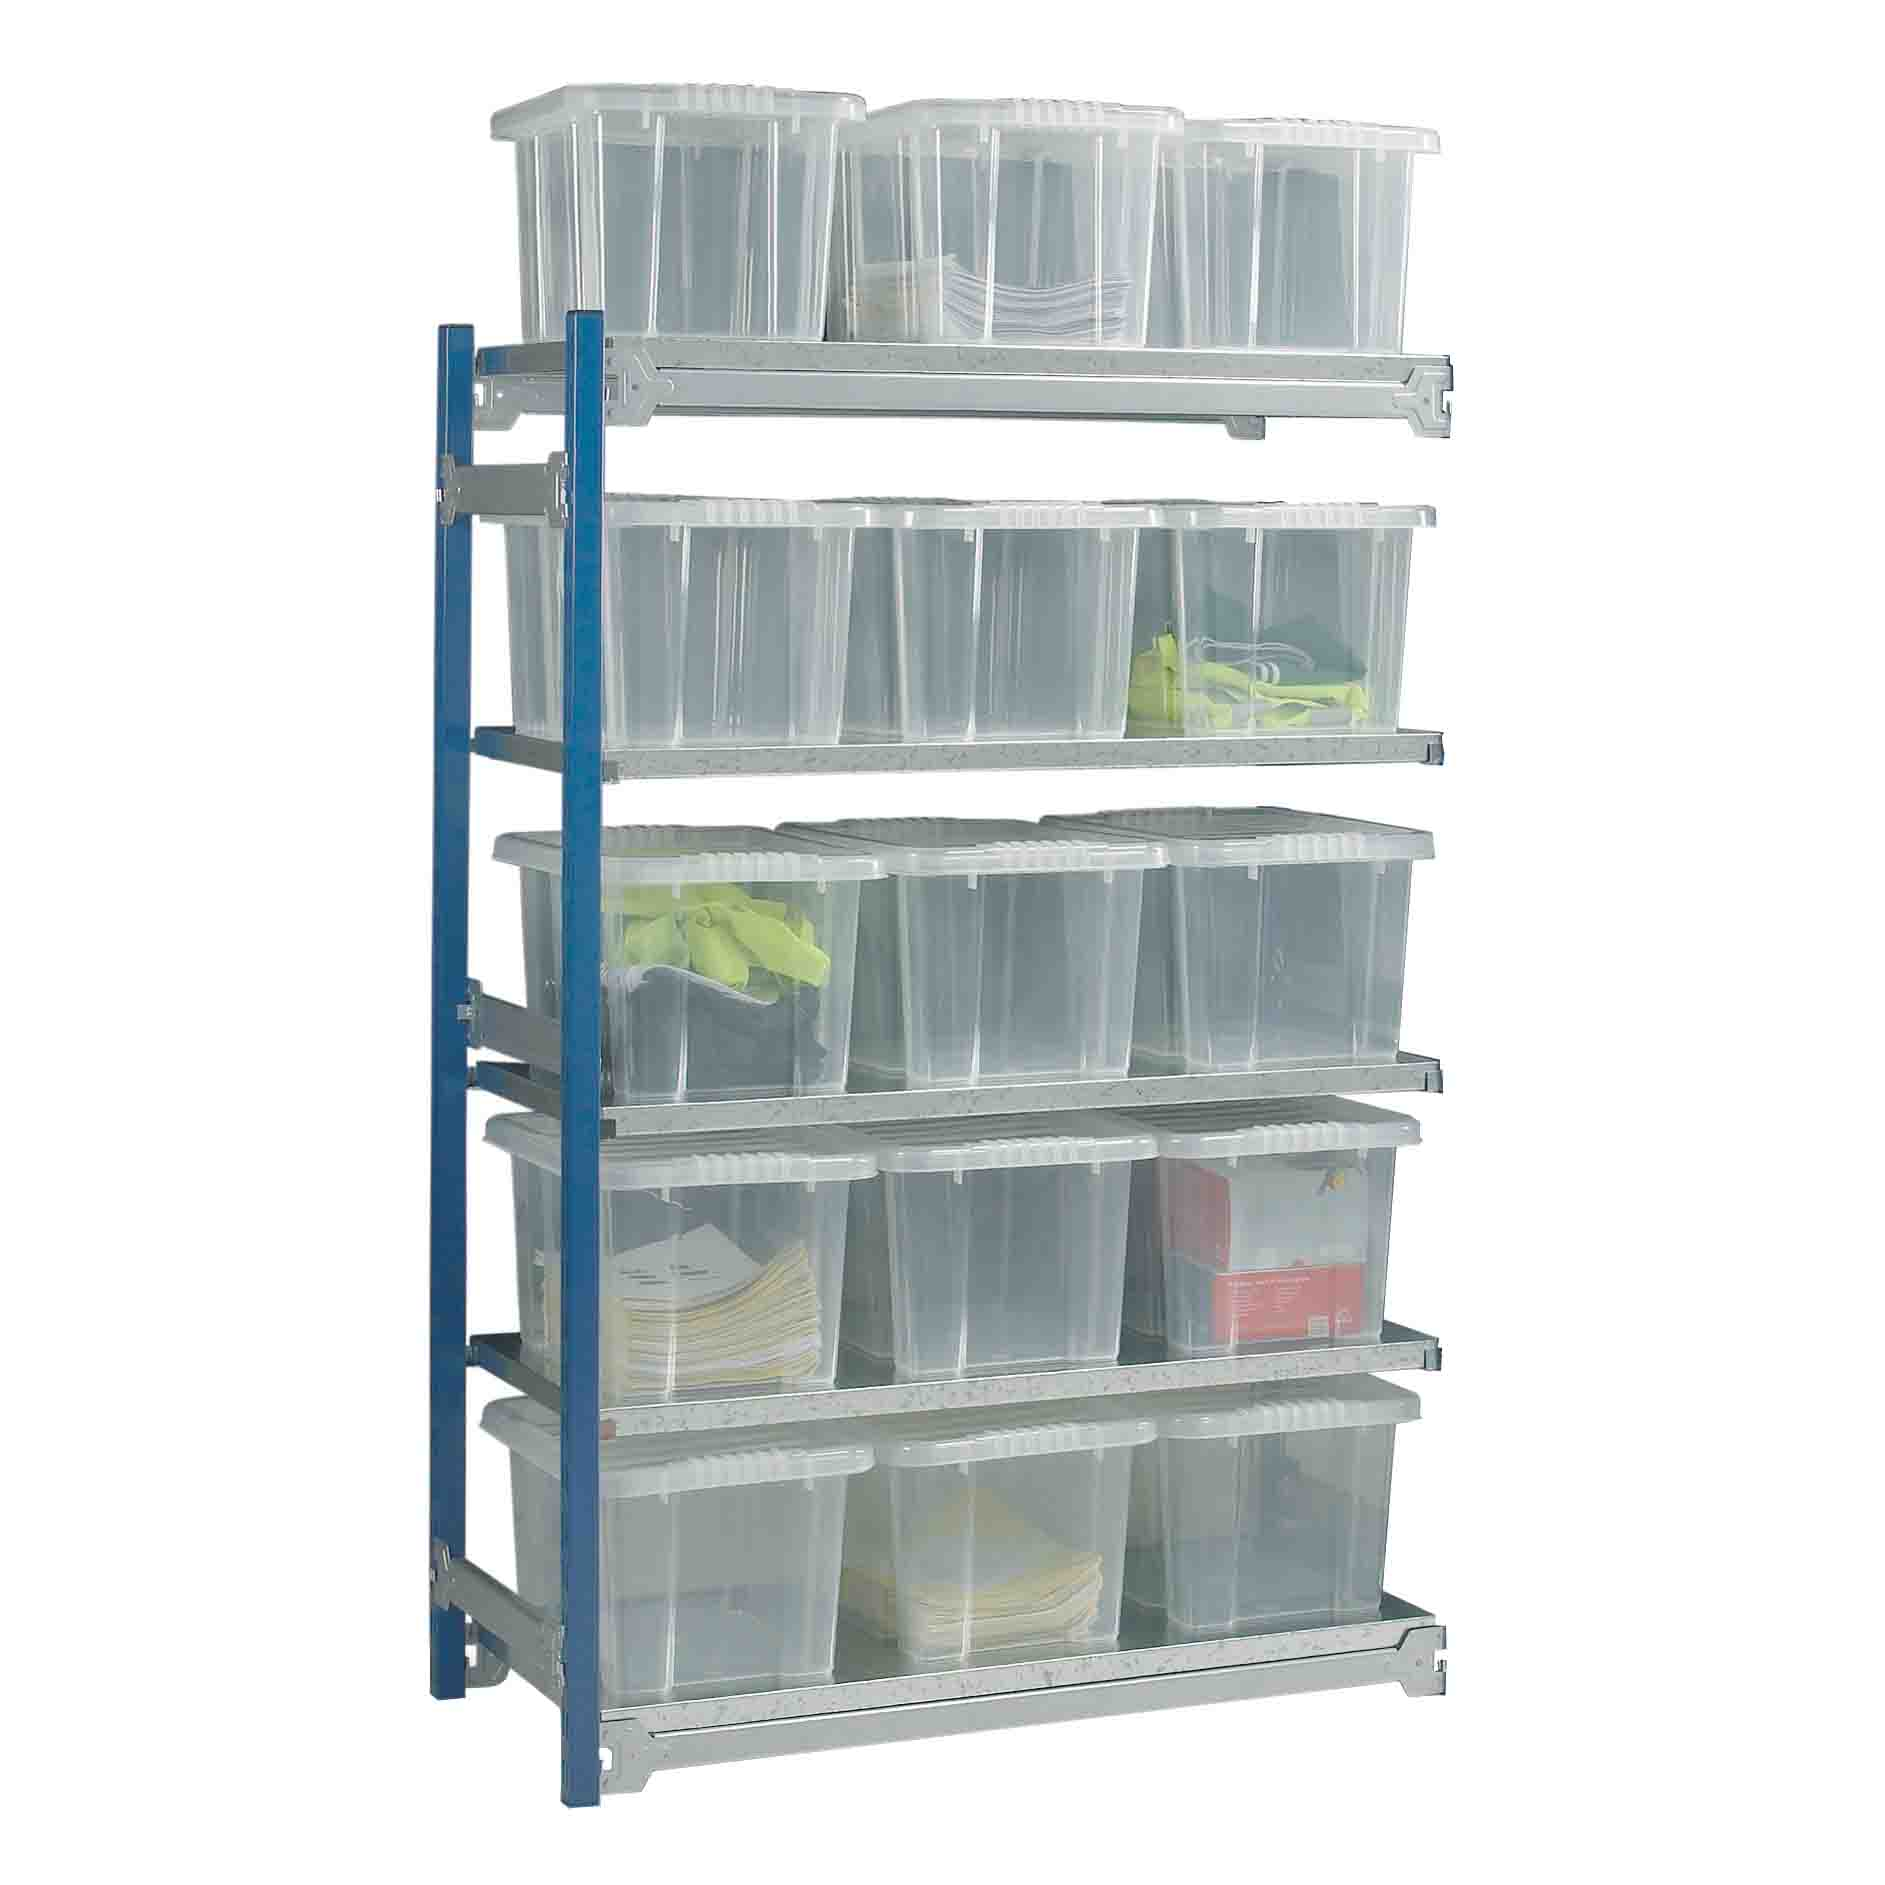 Toprax Shelving Extension Bay with 15 Containers